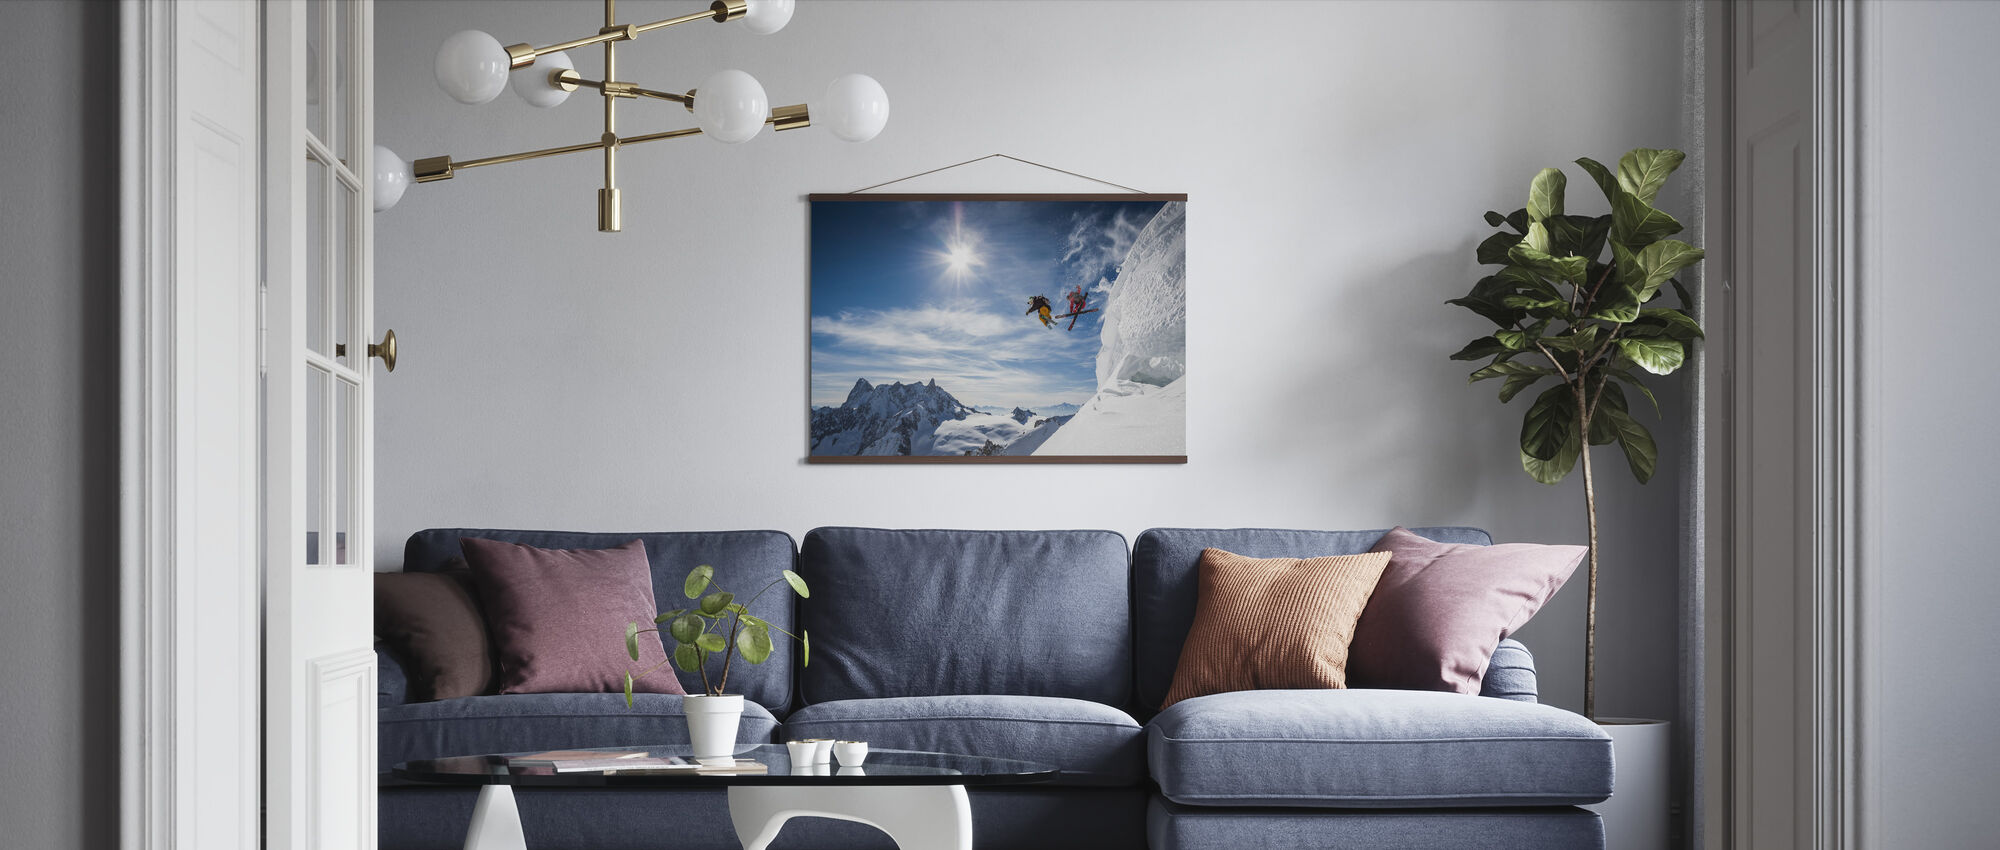 Jumping Legends - Poster - Living Room